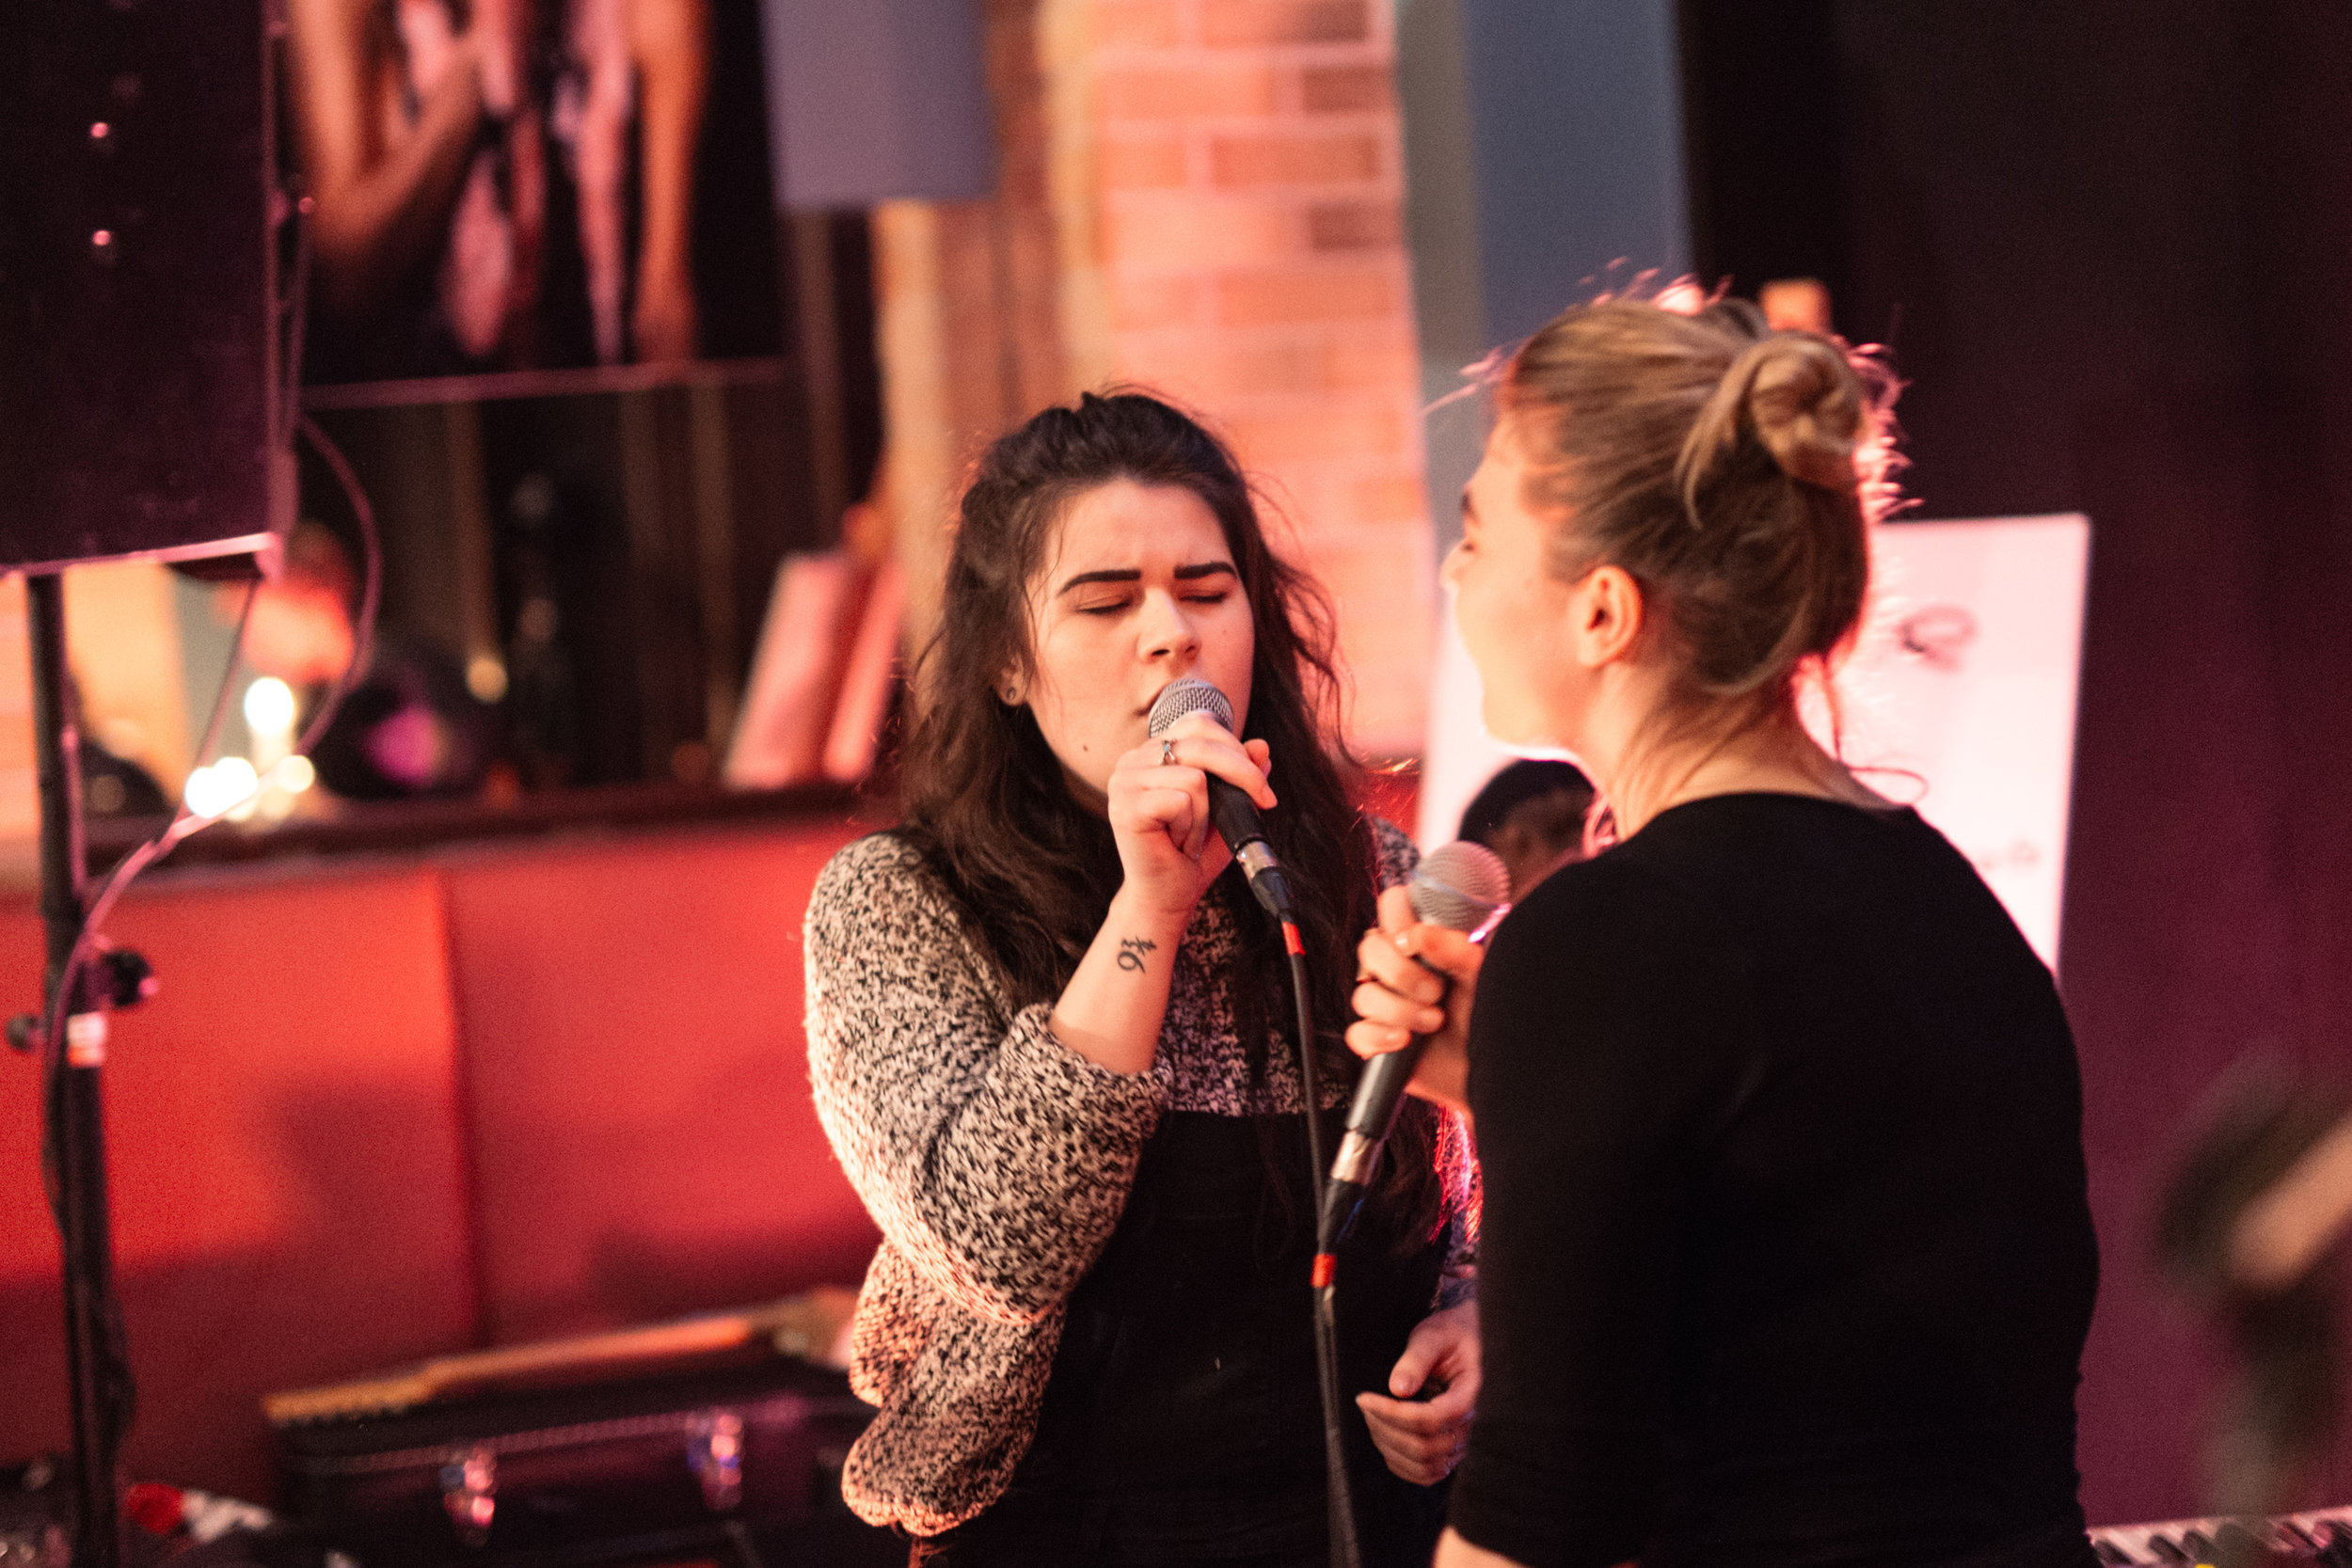 PrivateSoulFoodConcert-18.12.2016-Offenblende-150.jpg